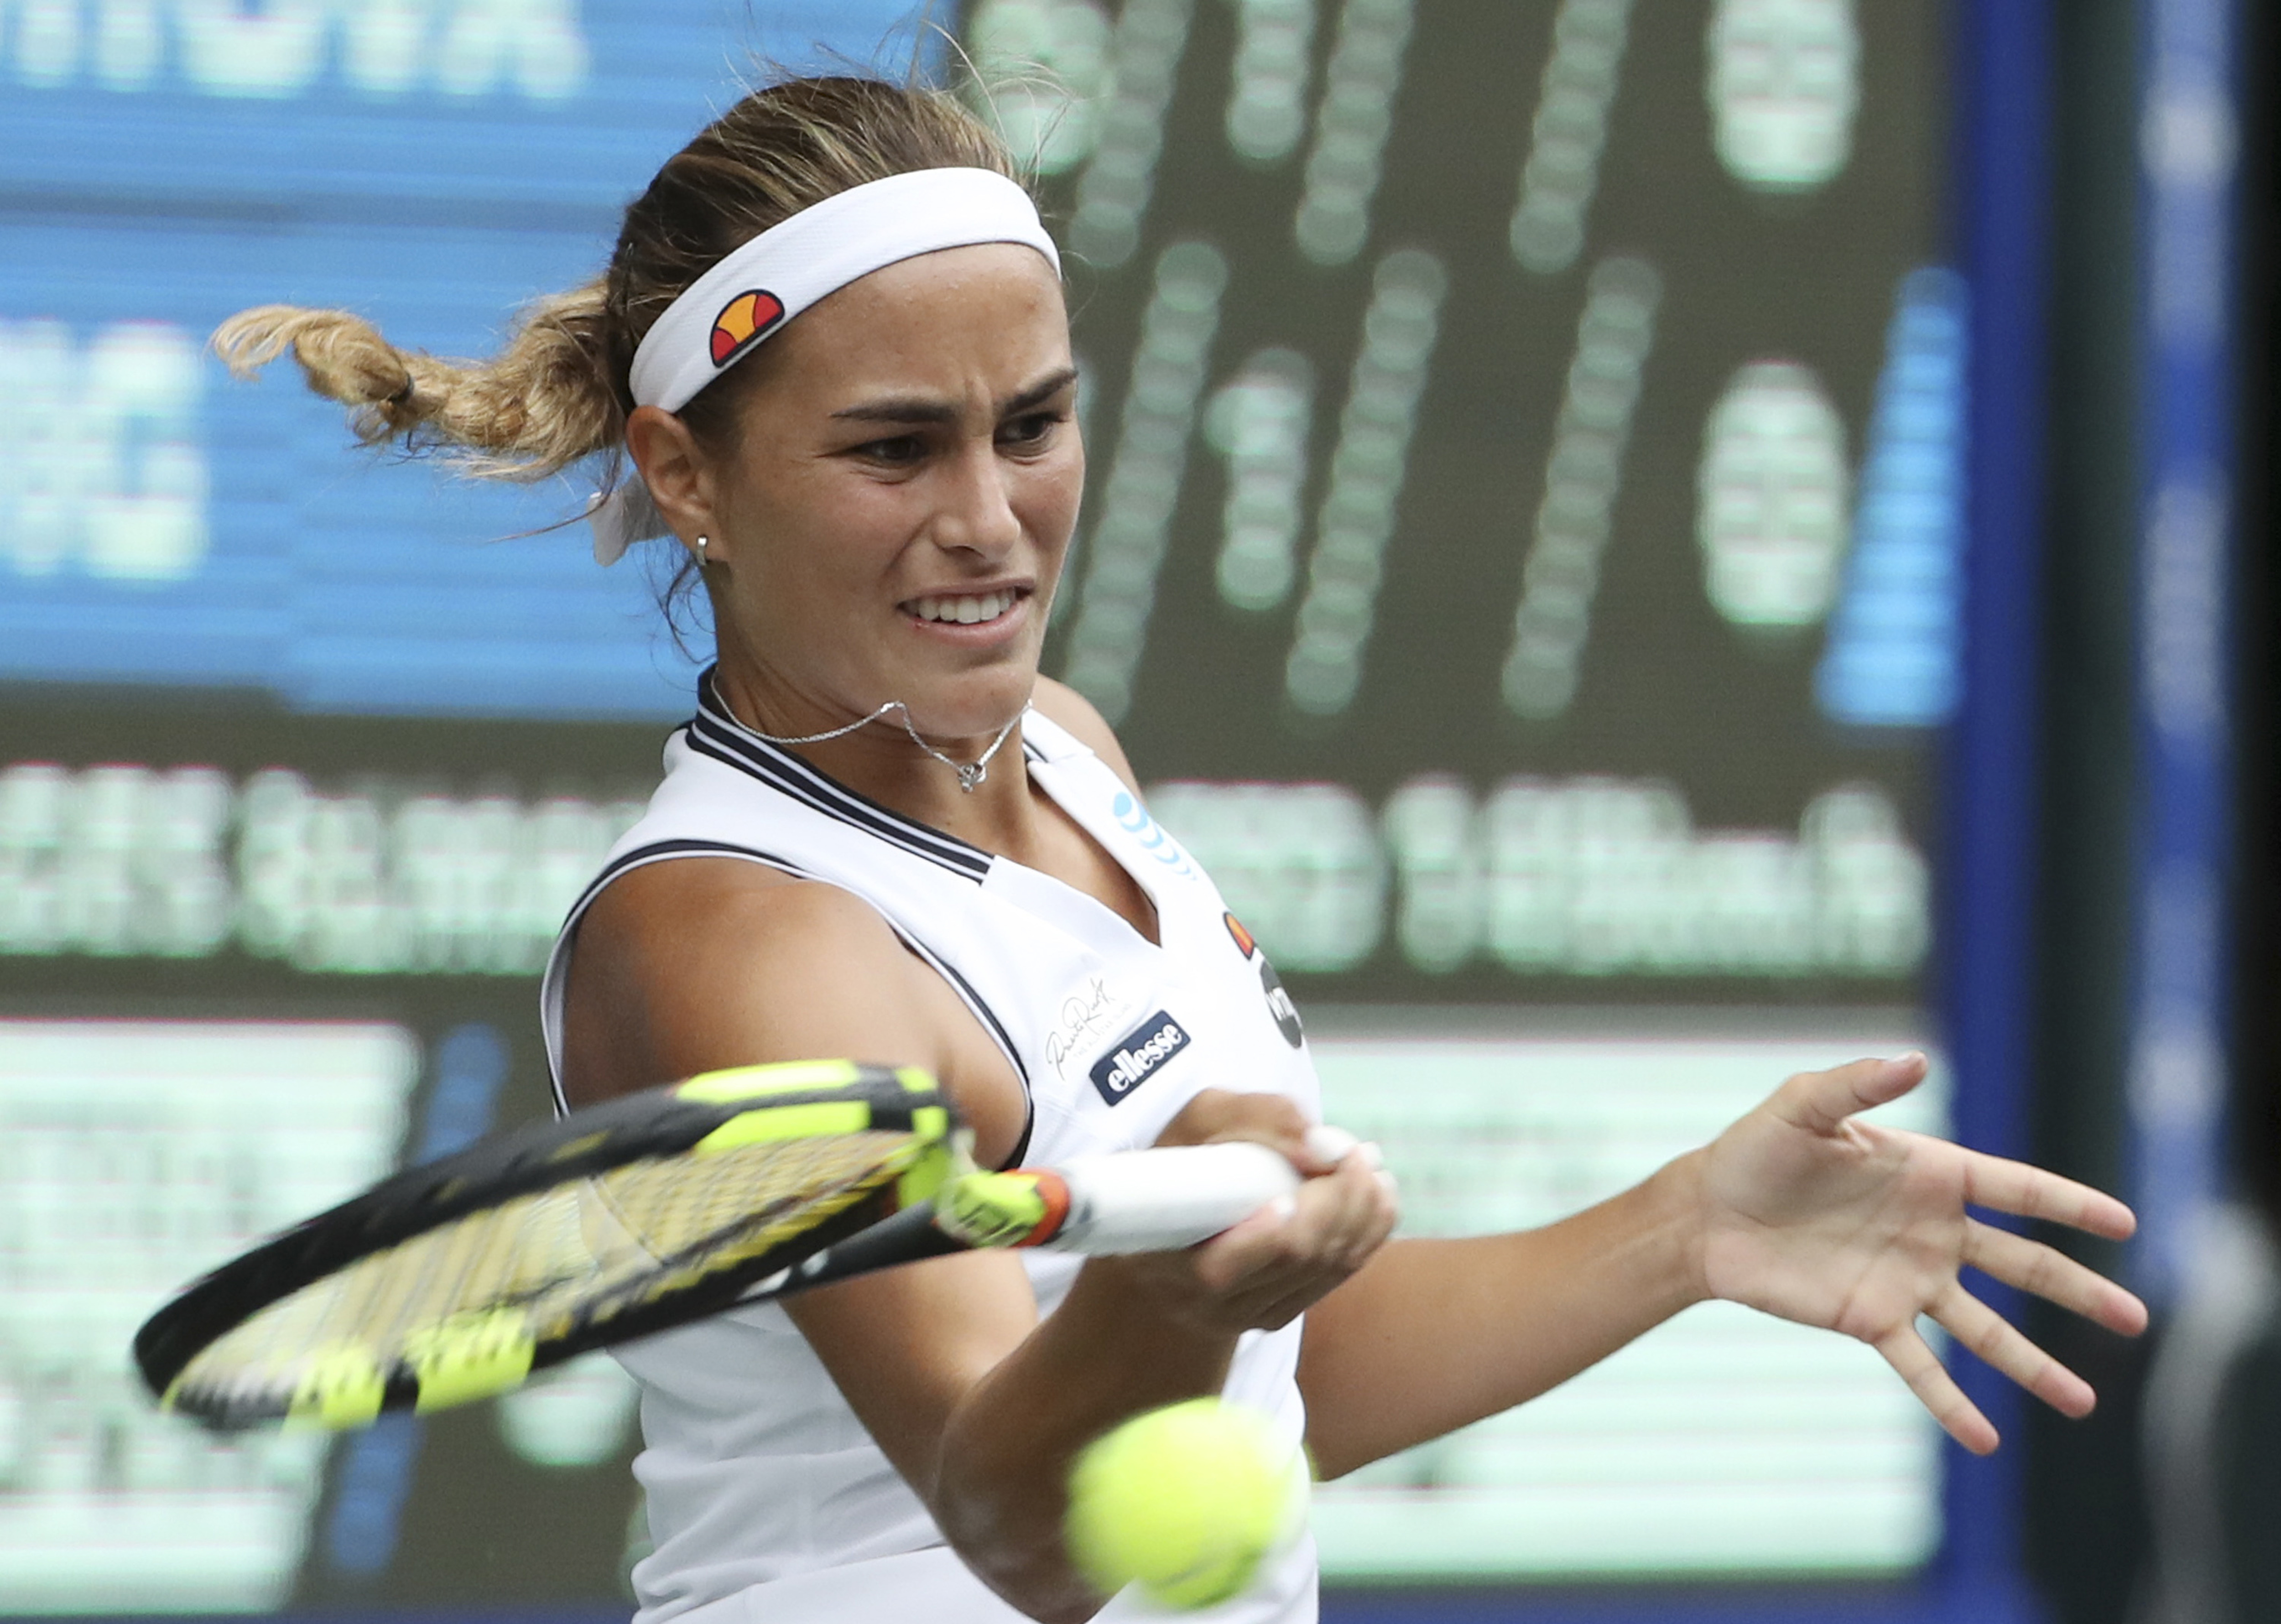 Monica Puig, of Puerto Rico, returns a shot against Petra Kvitova, of the Czech Republic, during the women's singles match at the Pan Pacific Open women's tennis tournament in Tokyo, Wednesday, Sept. 21, 2016. (AP Photo/Eugene Hoshiko)